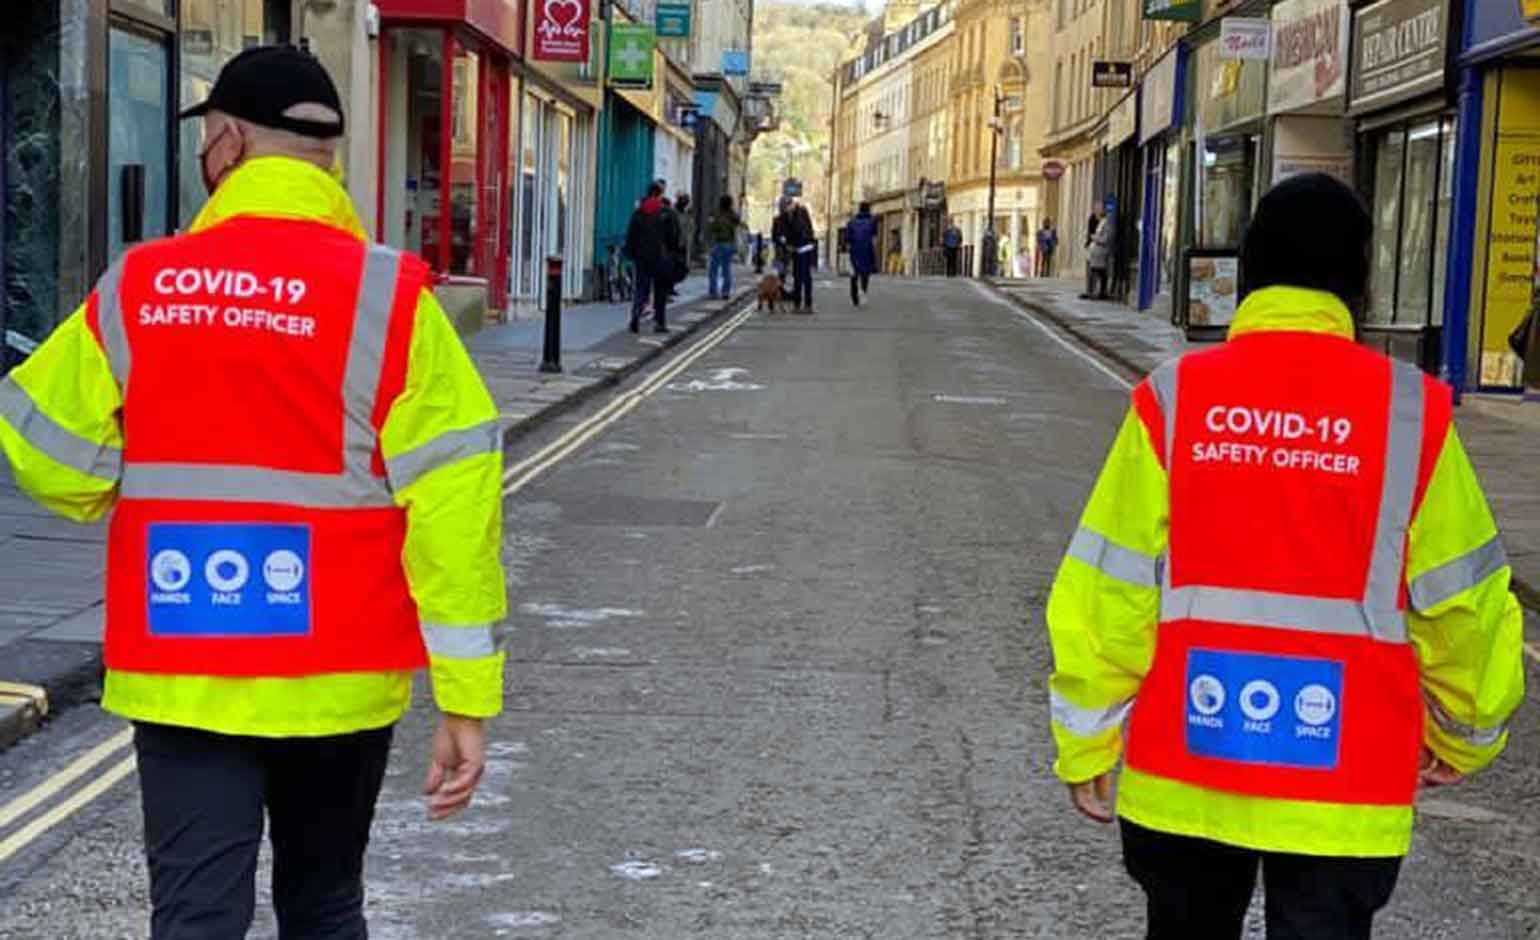 More Covid Safety Officers being introduced to reinforce lockdown guidance